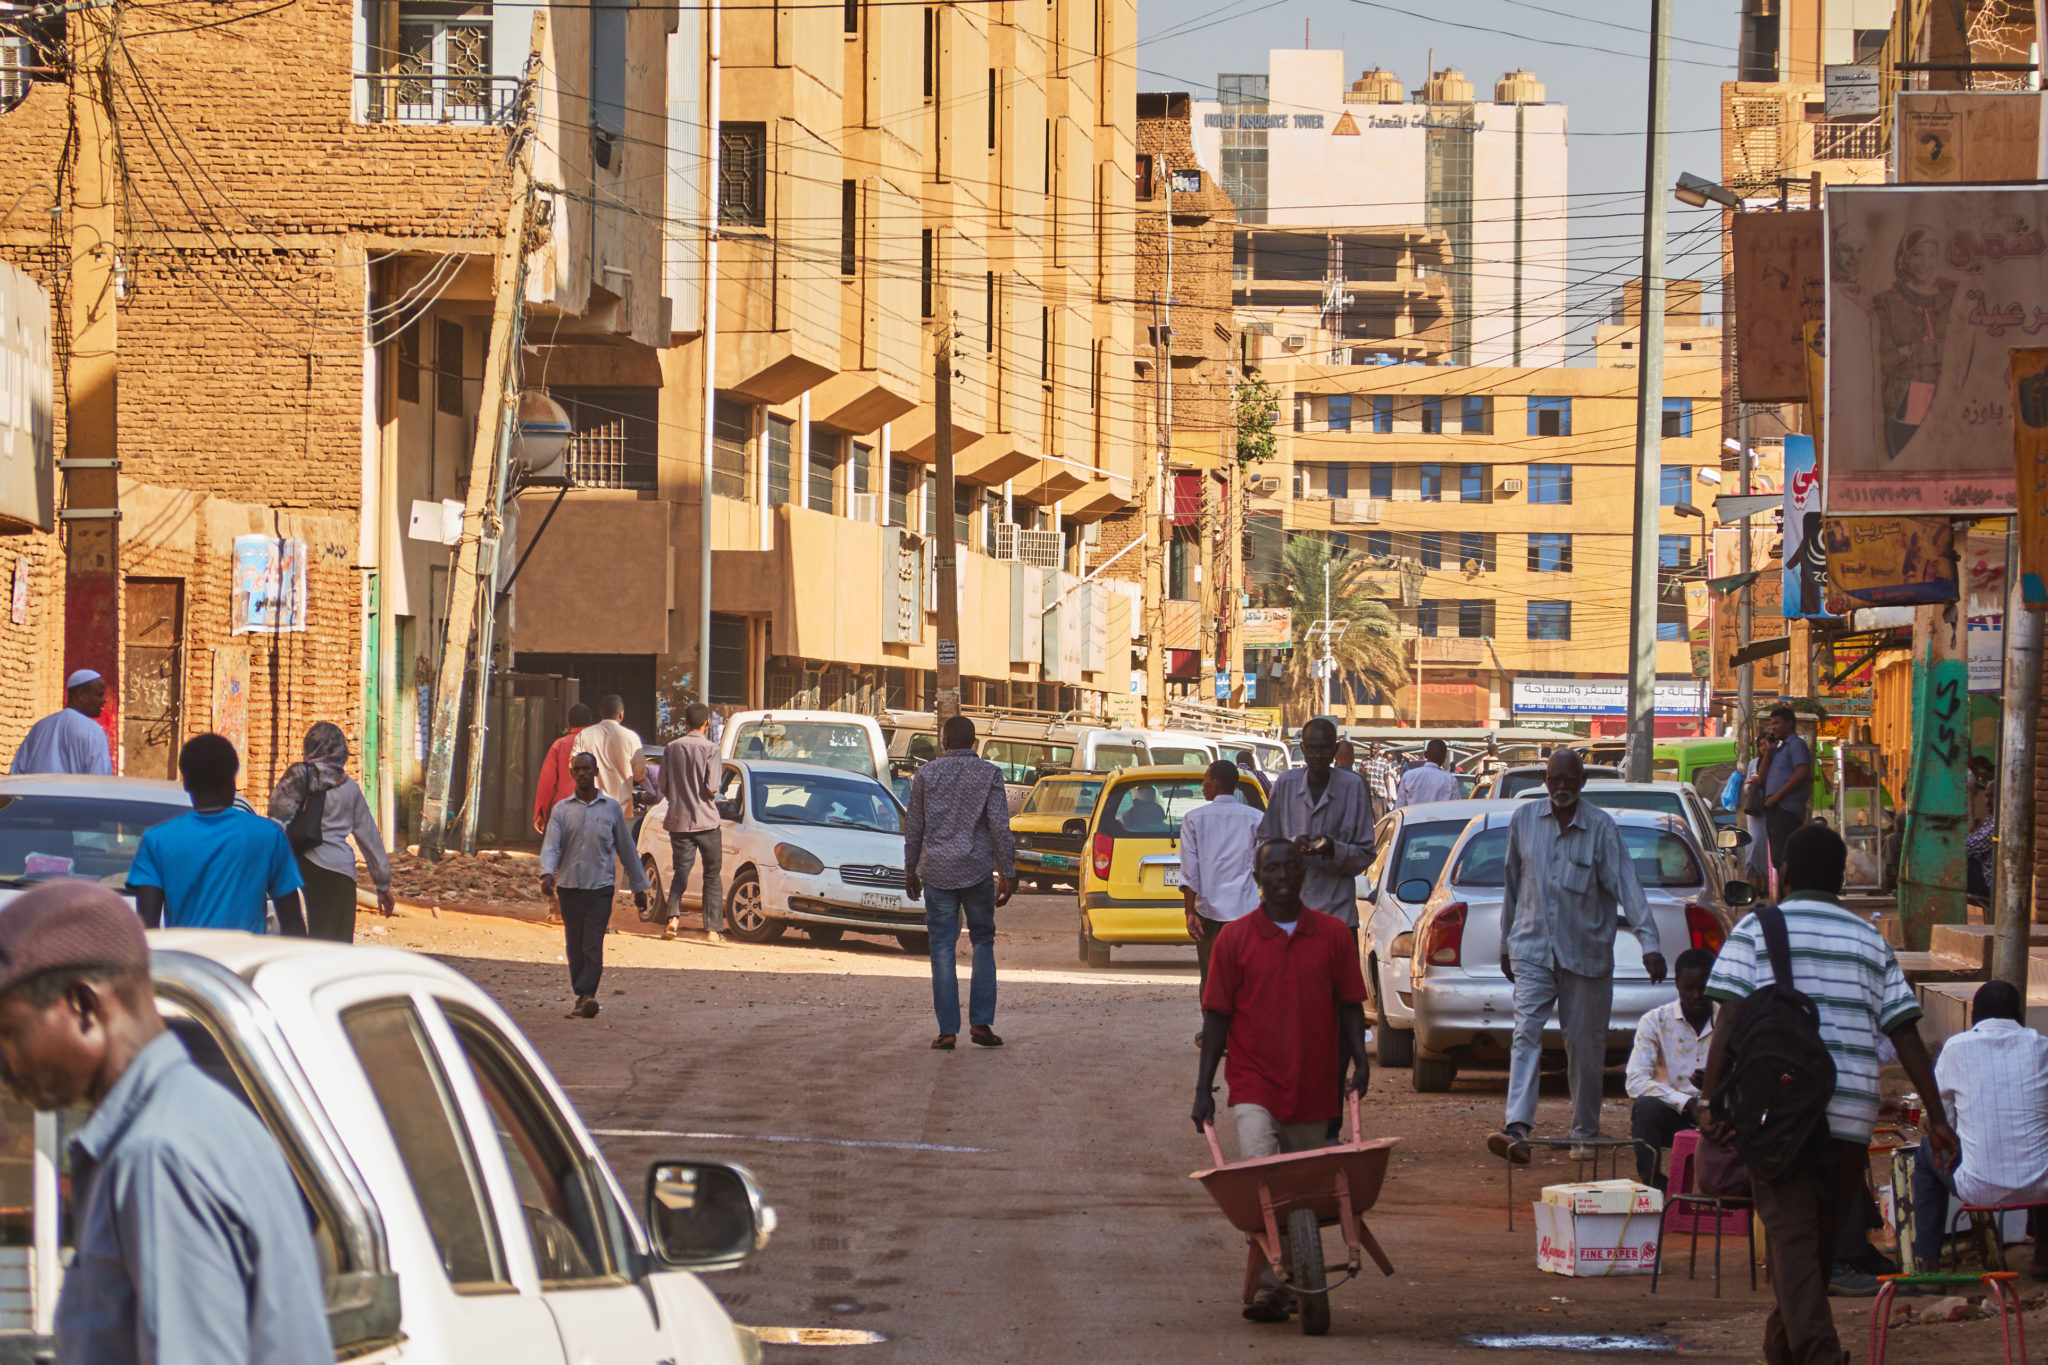 Troubles Mount for Sudan Amid Covid-19 Challenge